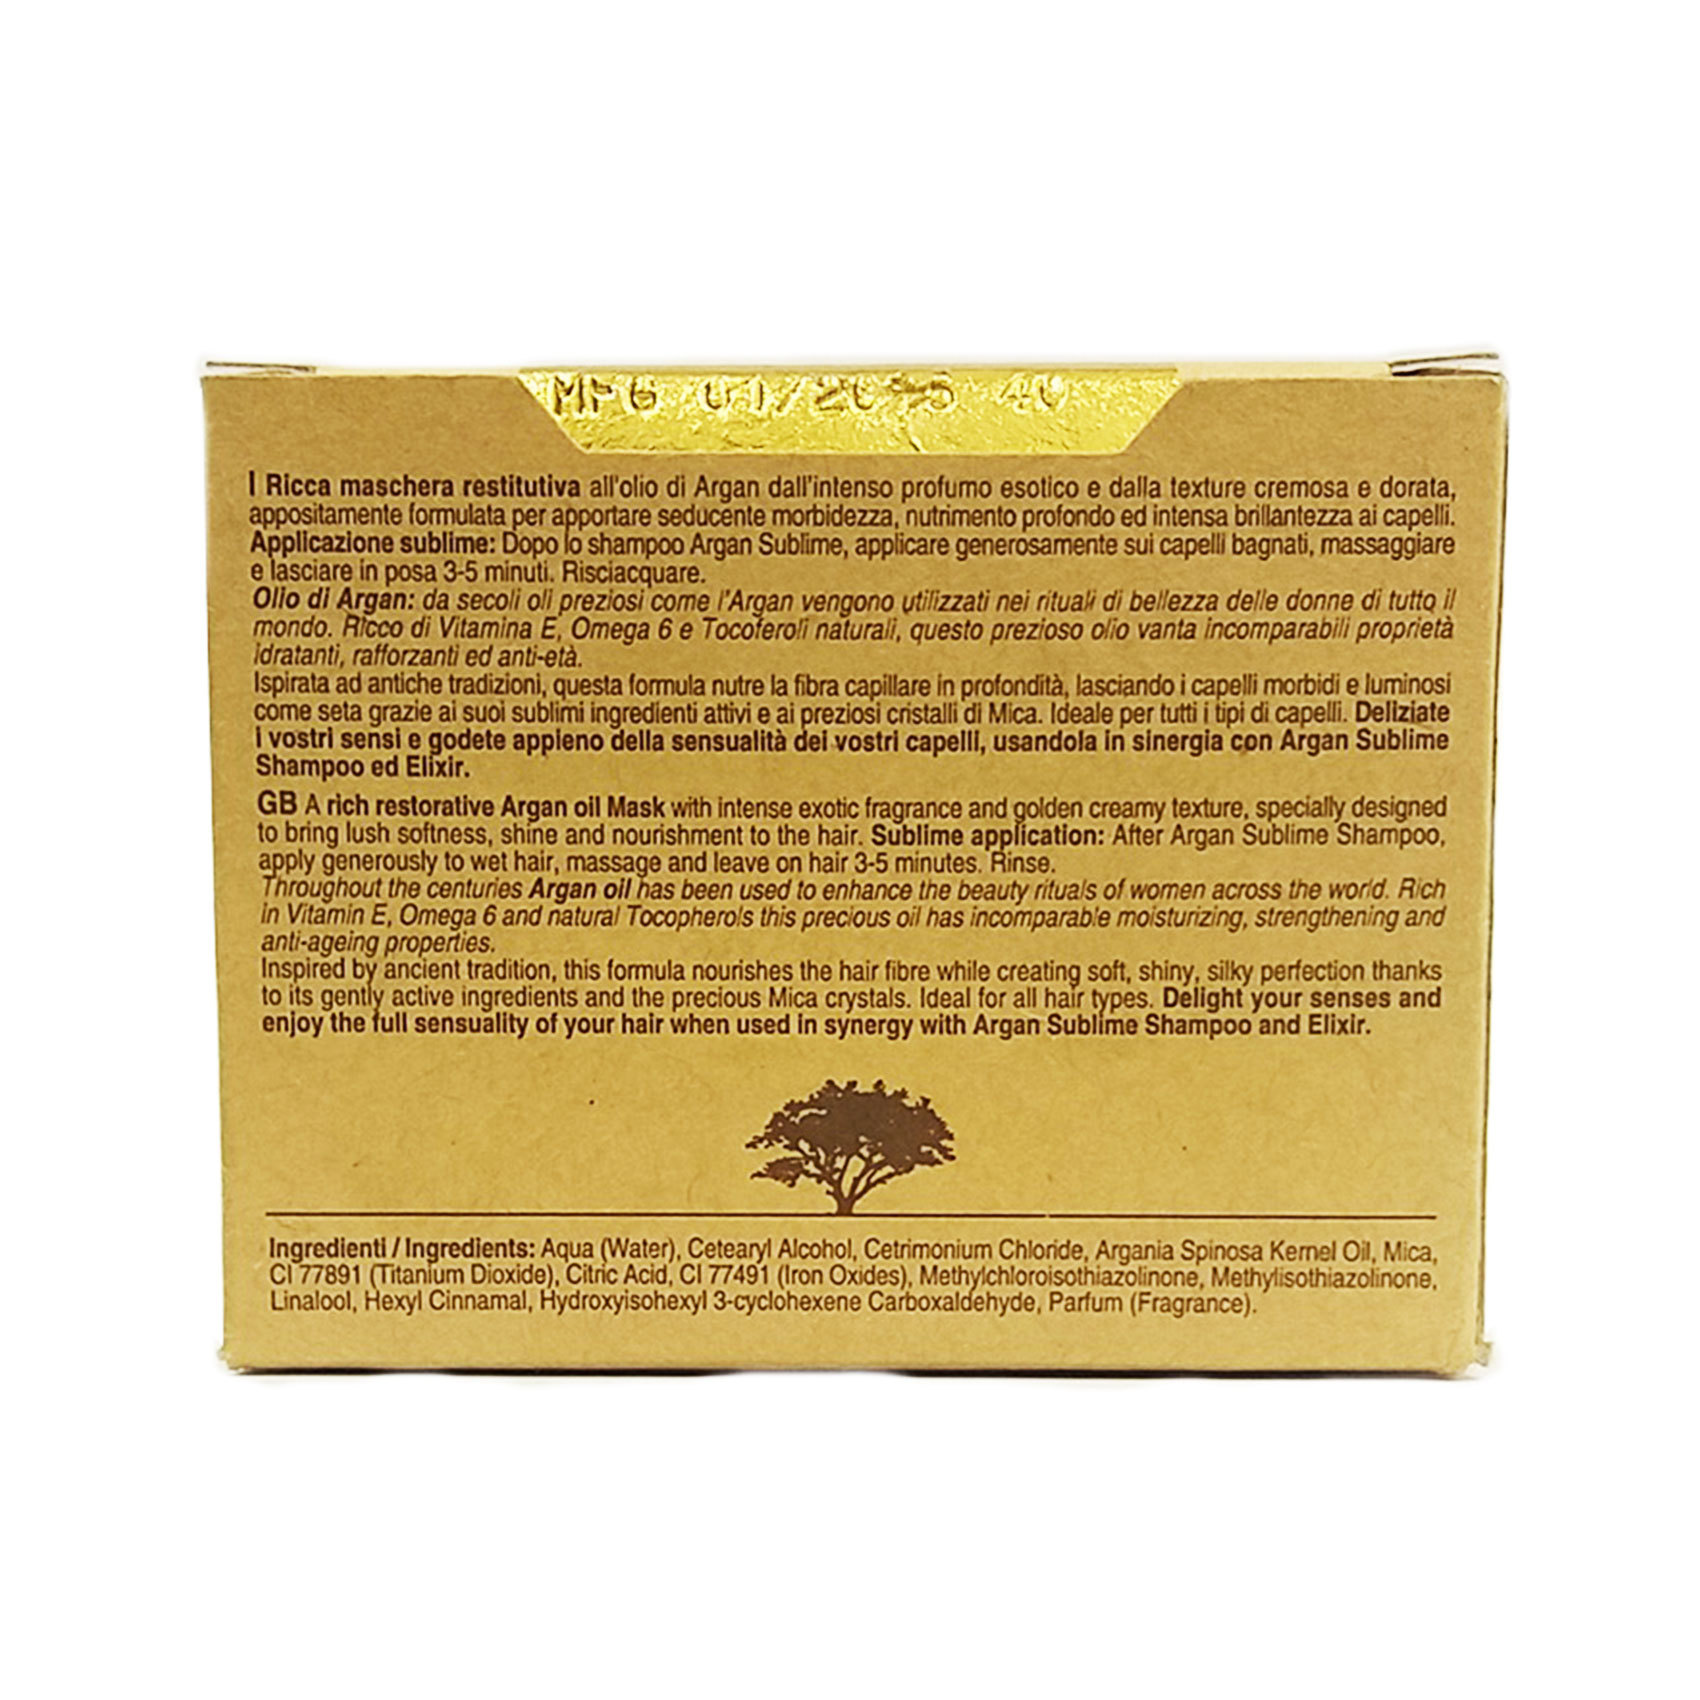 ARGAN OIL MASK 250ML